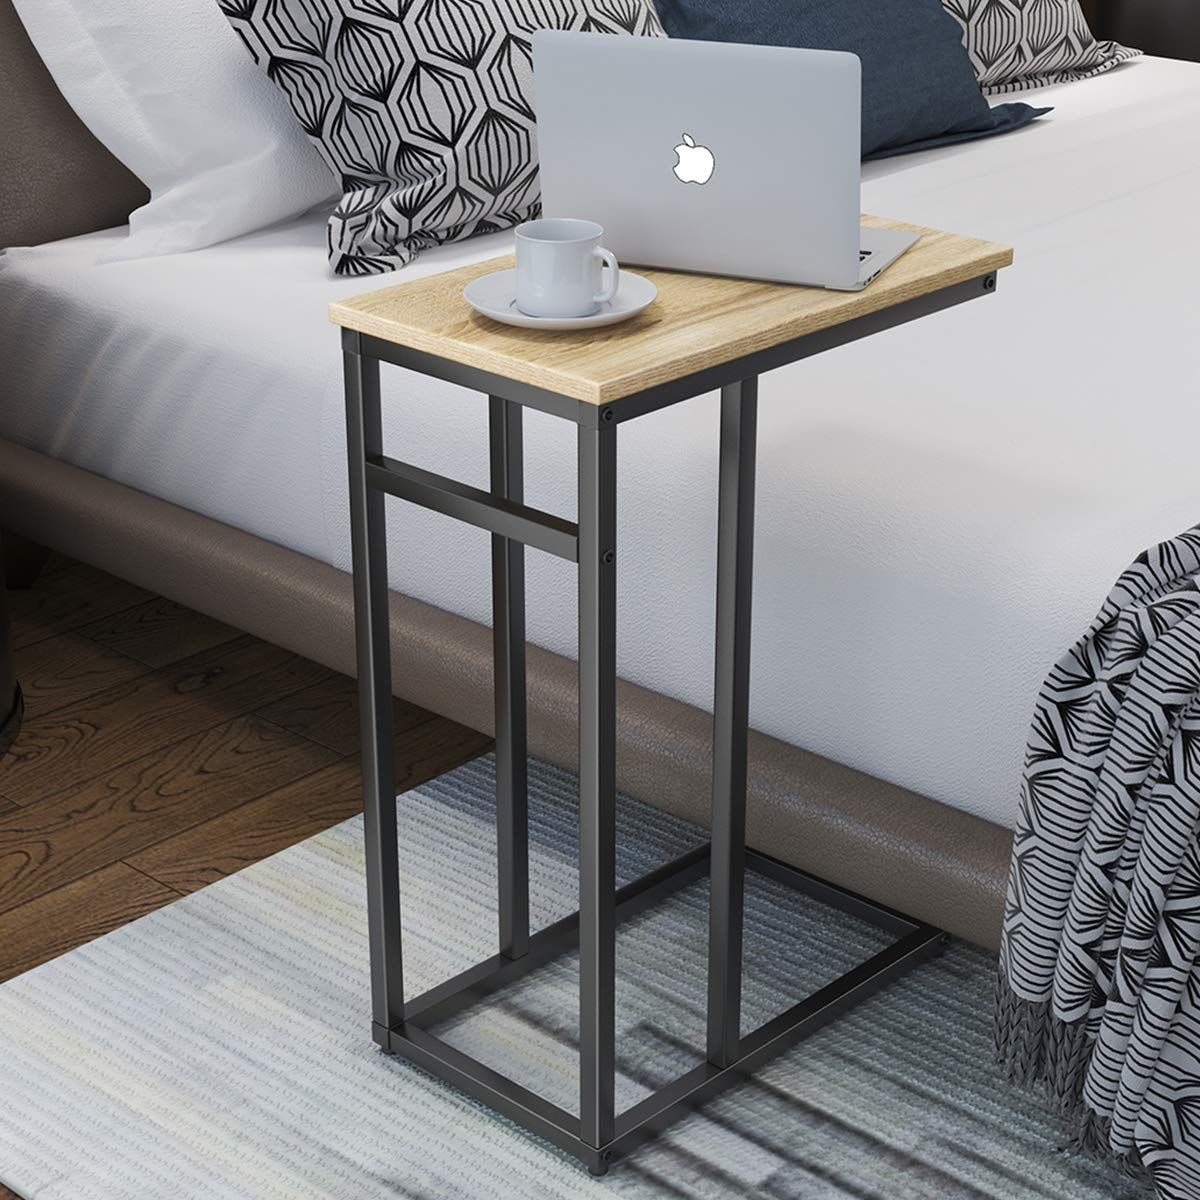 Table Sofa Side Table For Small Space In 2020 Sofa Side Table Table For Small Space Side Table